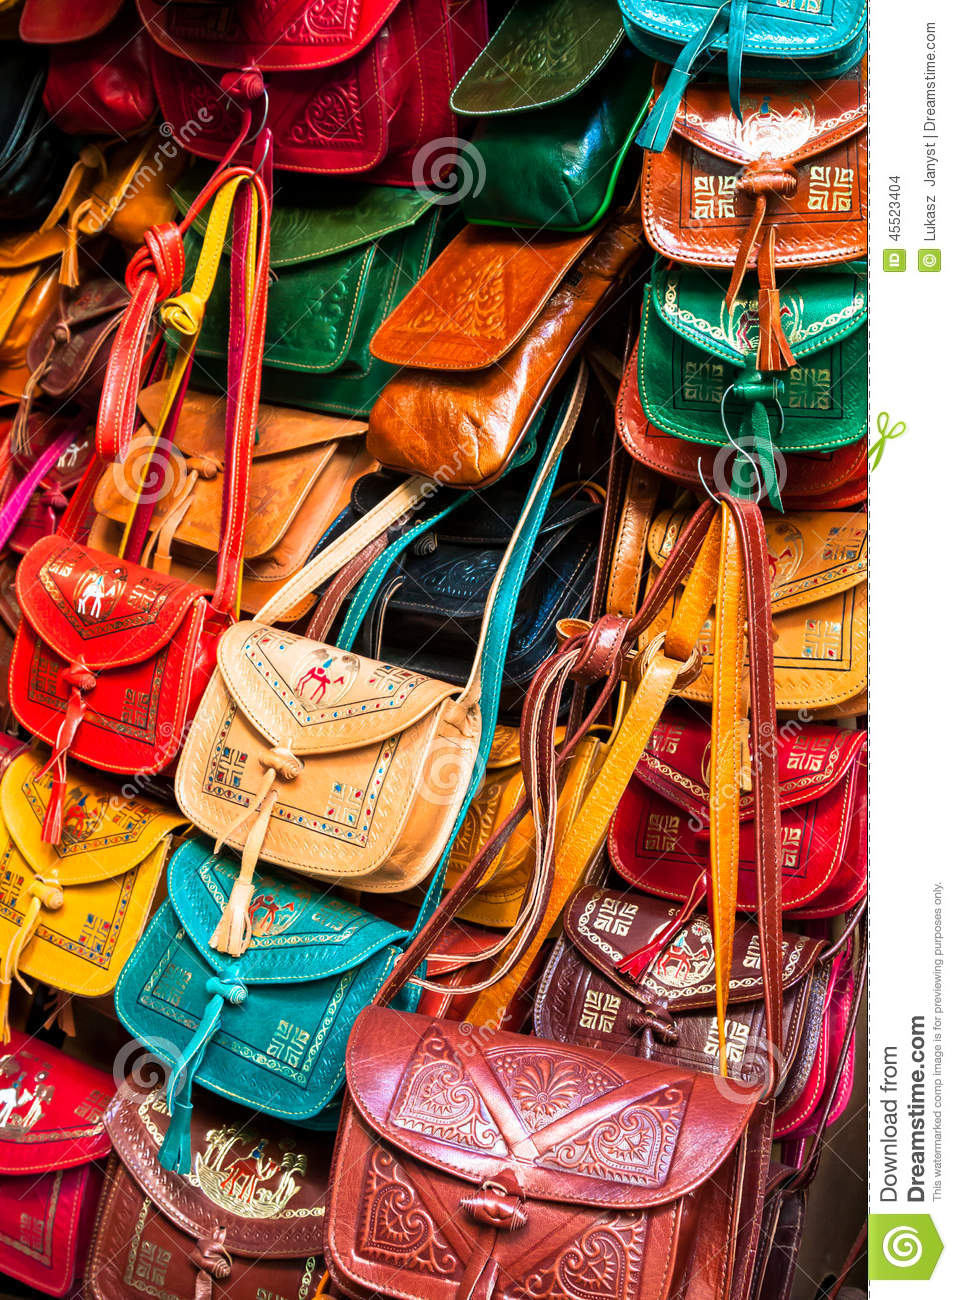 aa04c8ae4841 Colorful Leather Handbags Collection On Tunis Market Stock Photo ...